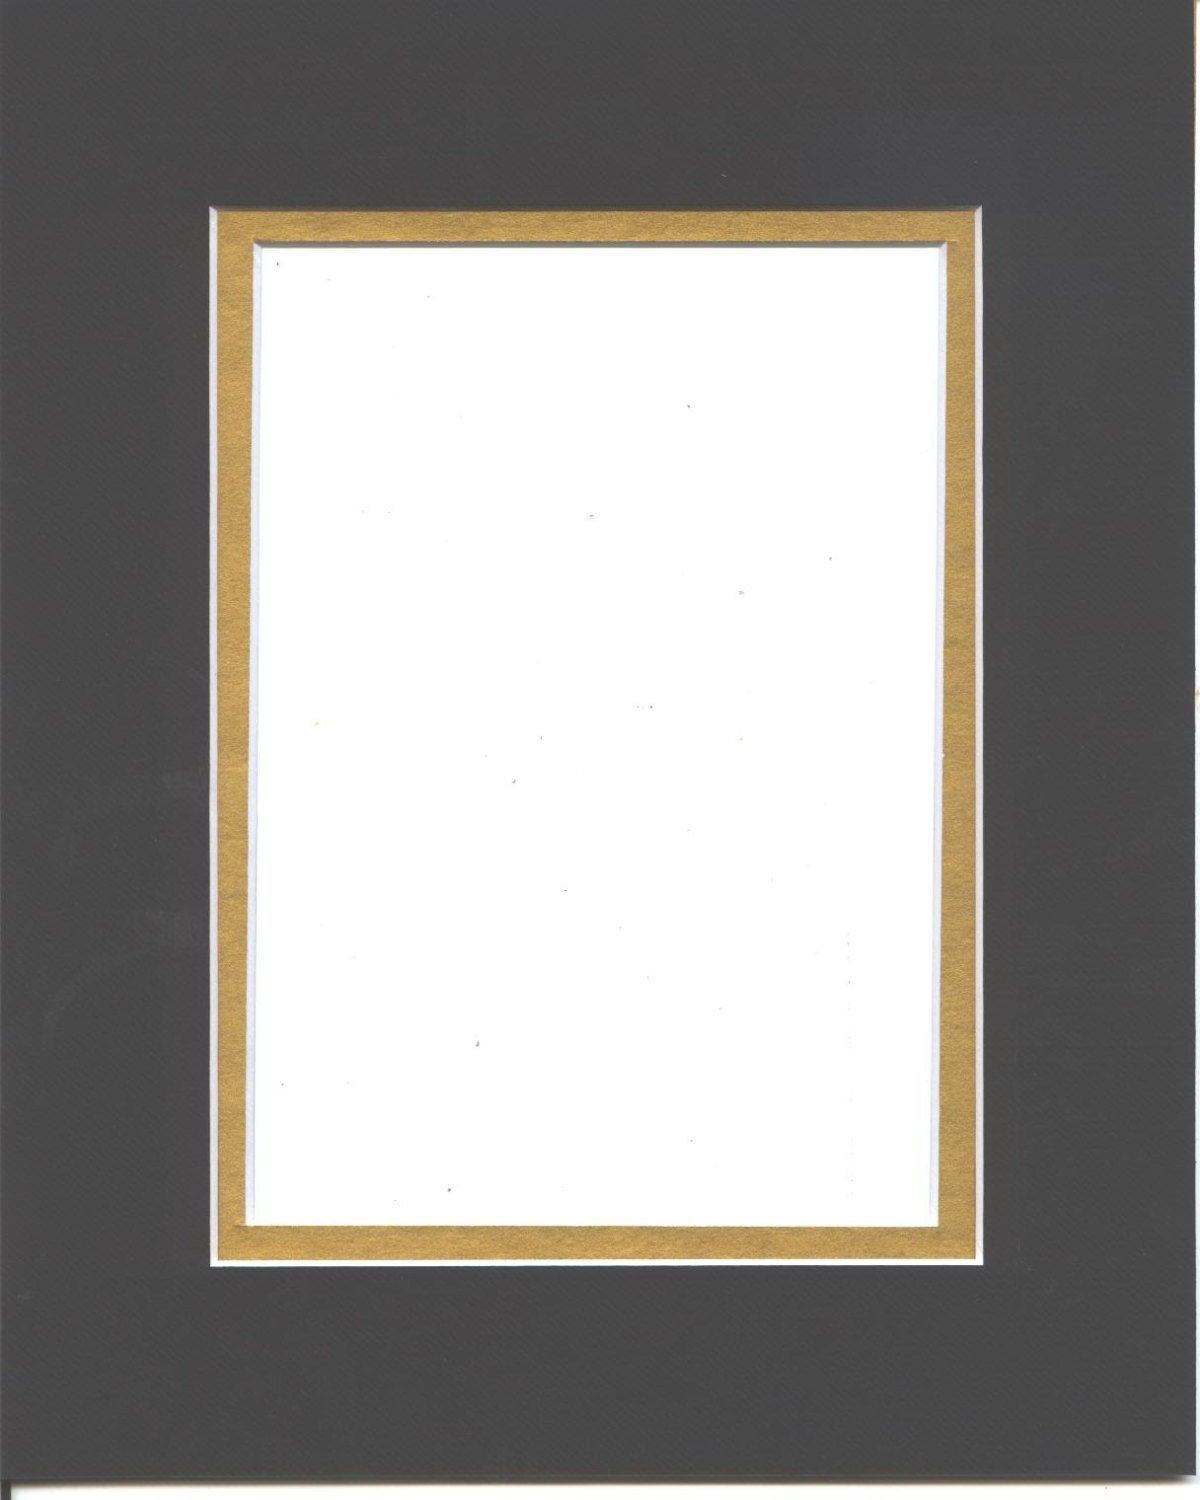 18x24 Black Amp Gold Double Picture Mat With White Core Bevel